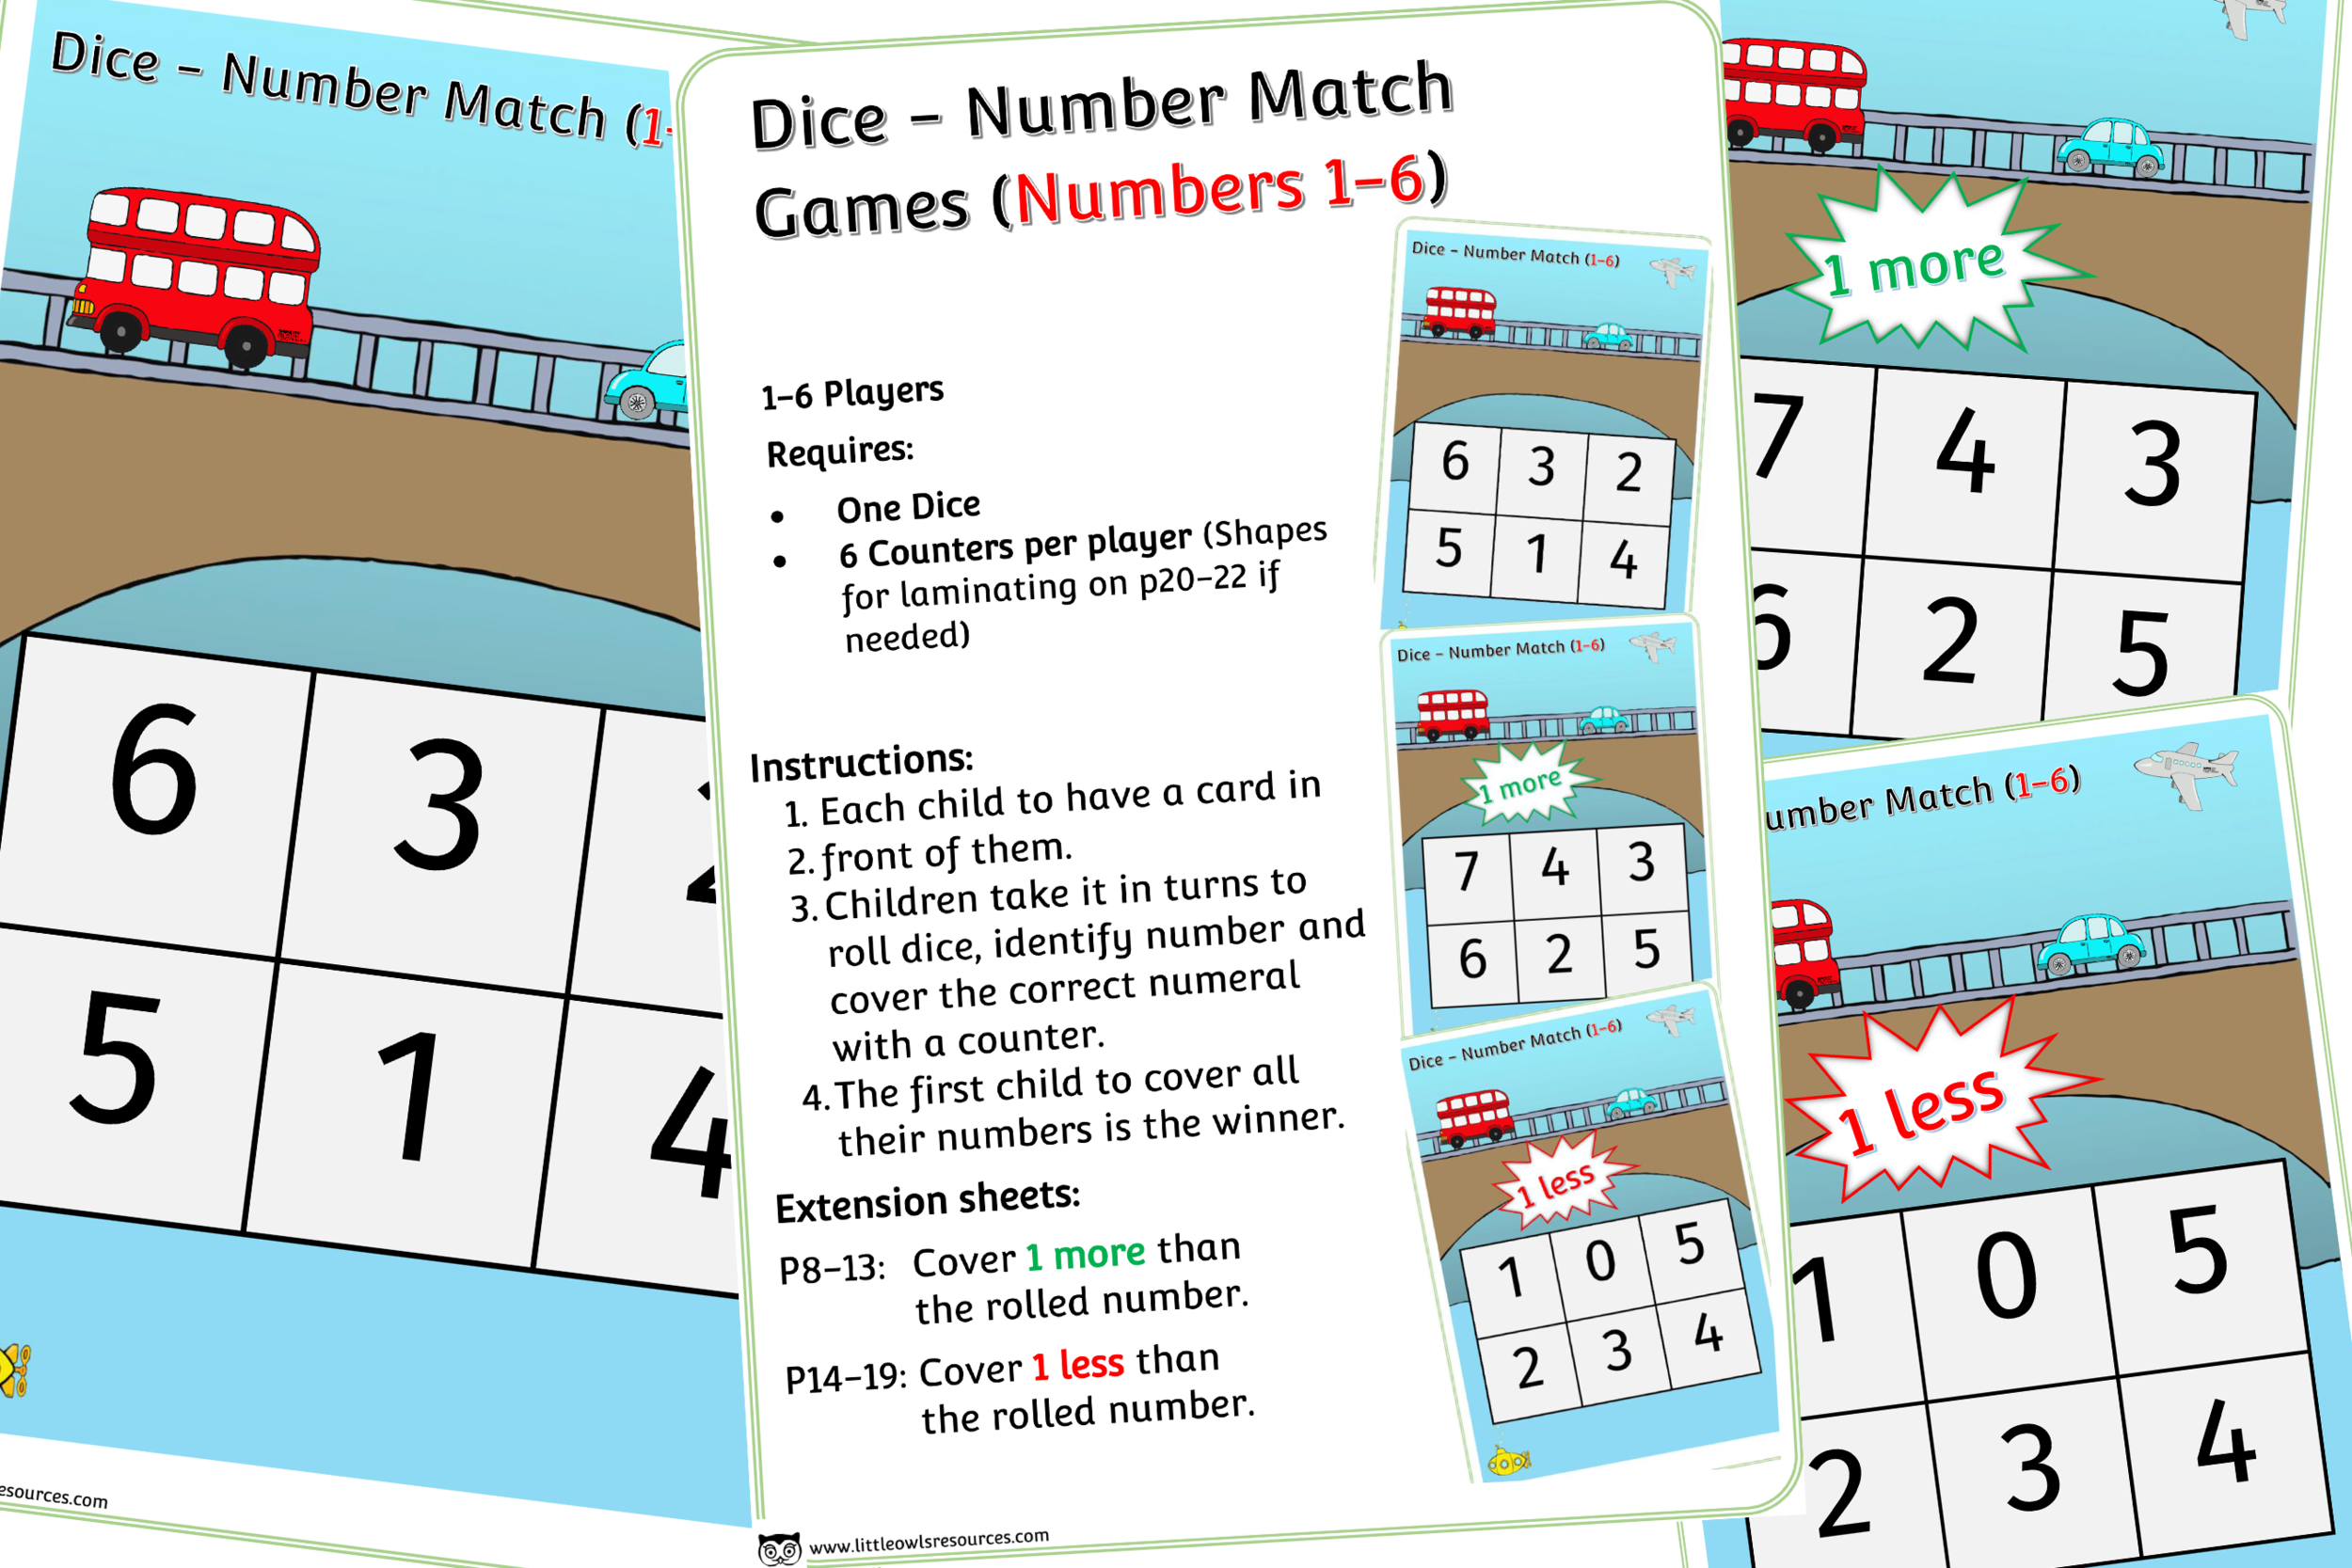 VEHICLES THEME DICE GAME (1-6)